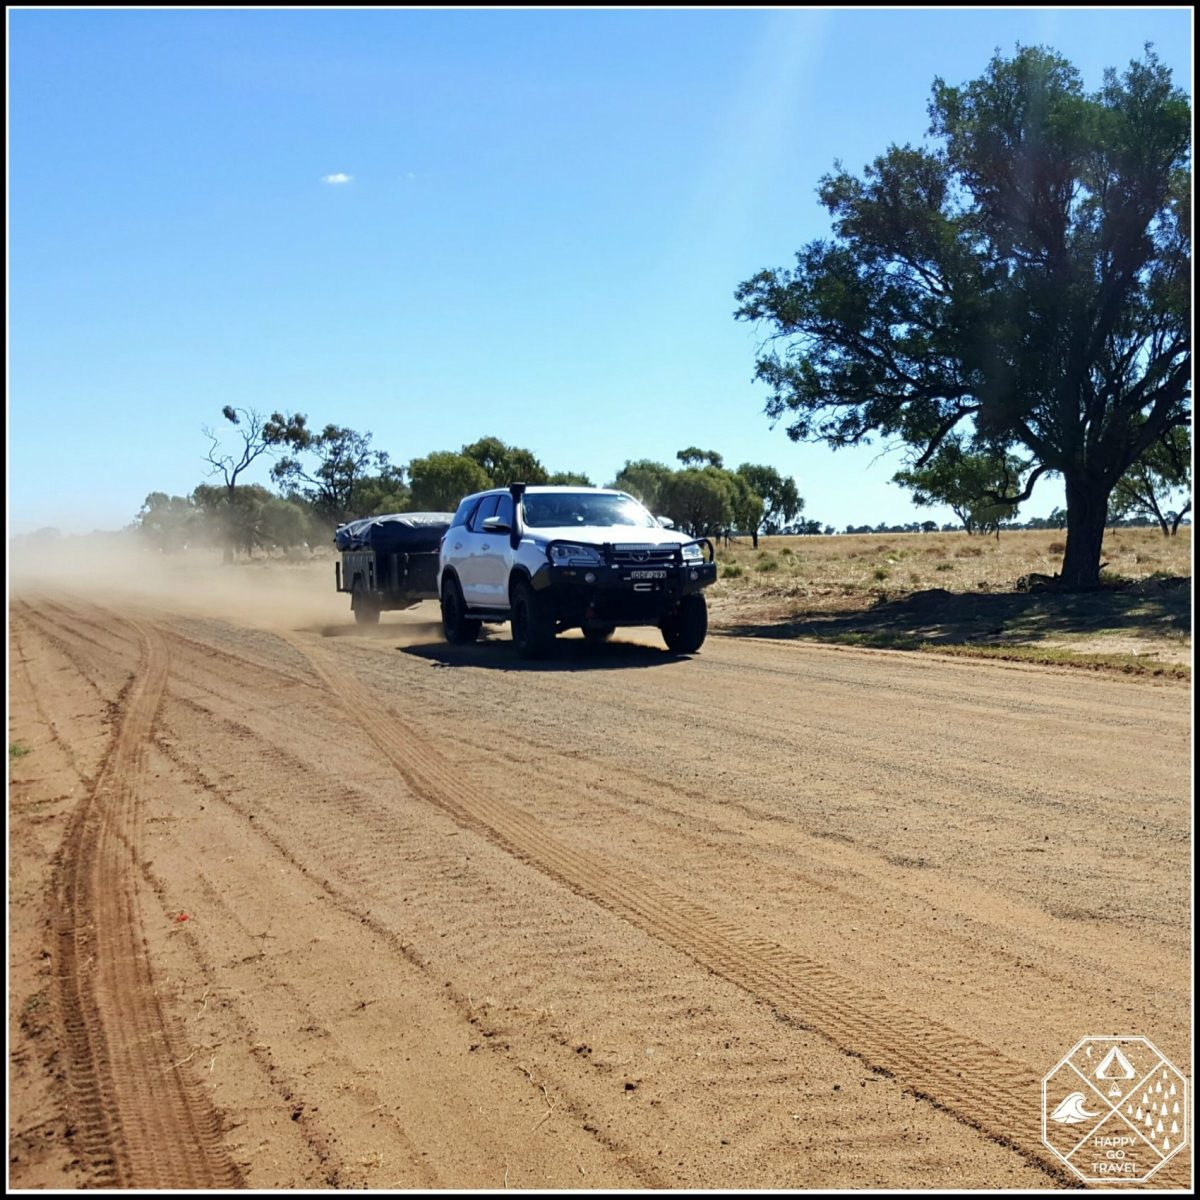 The Actual Road Trip - Hunter Valley to Lightning Ridge